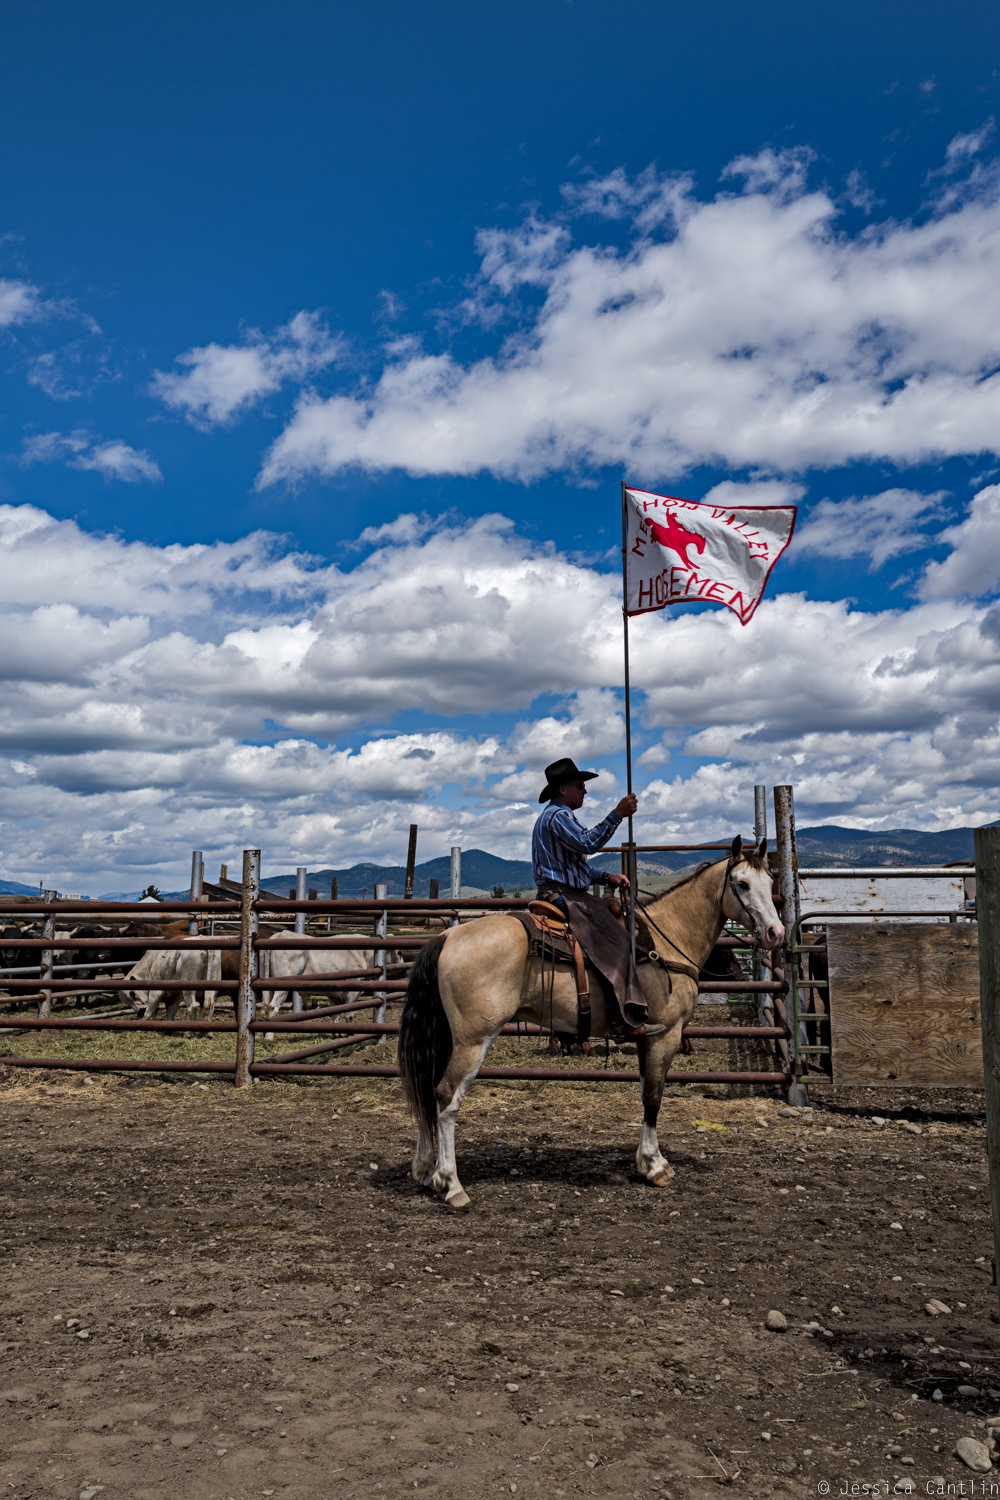 Scenes from the Winthrop Rodeo